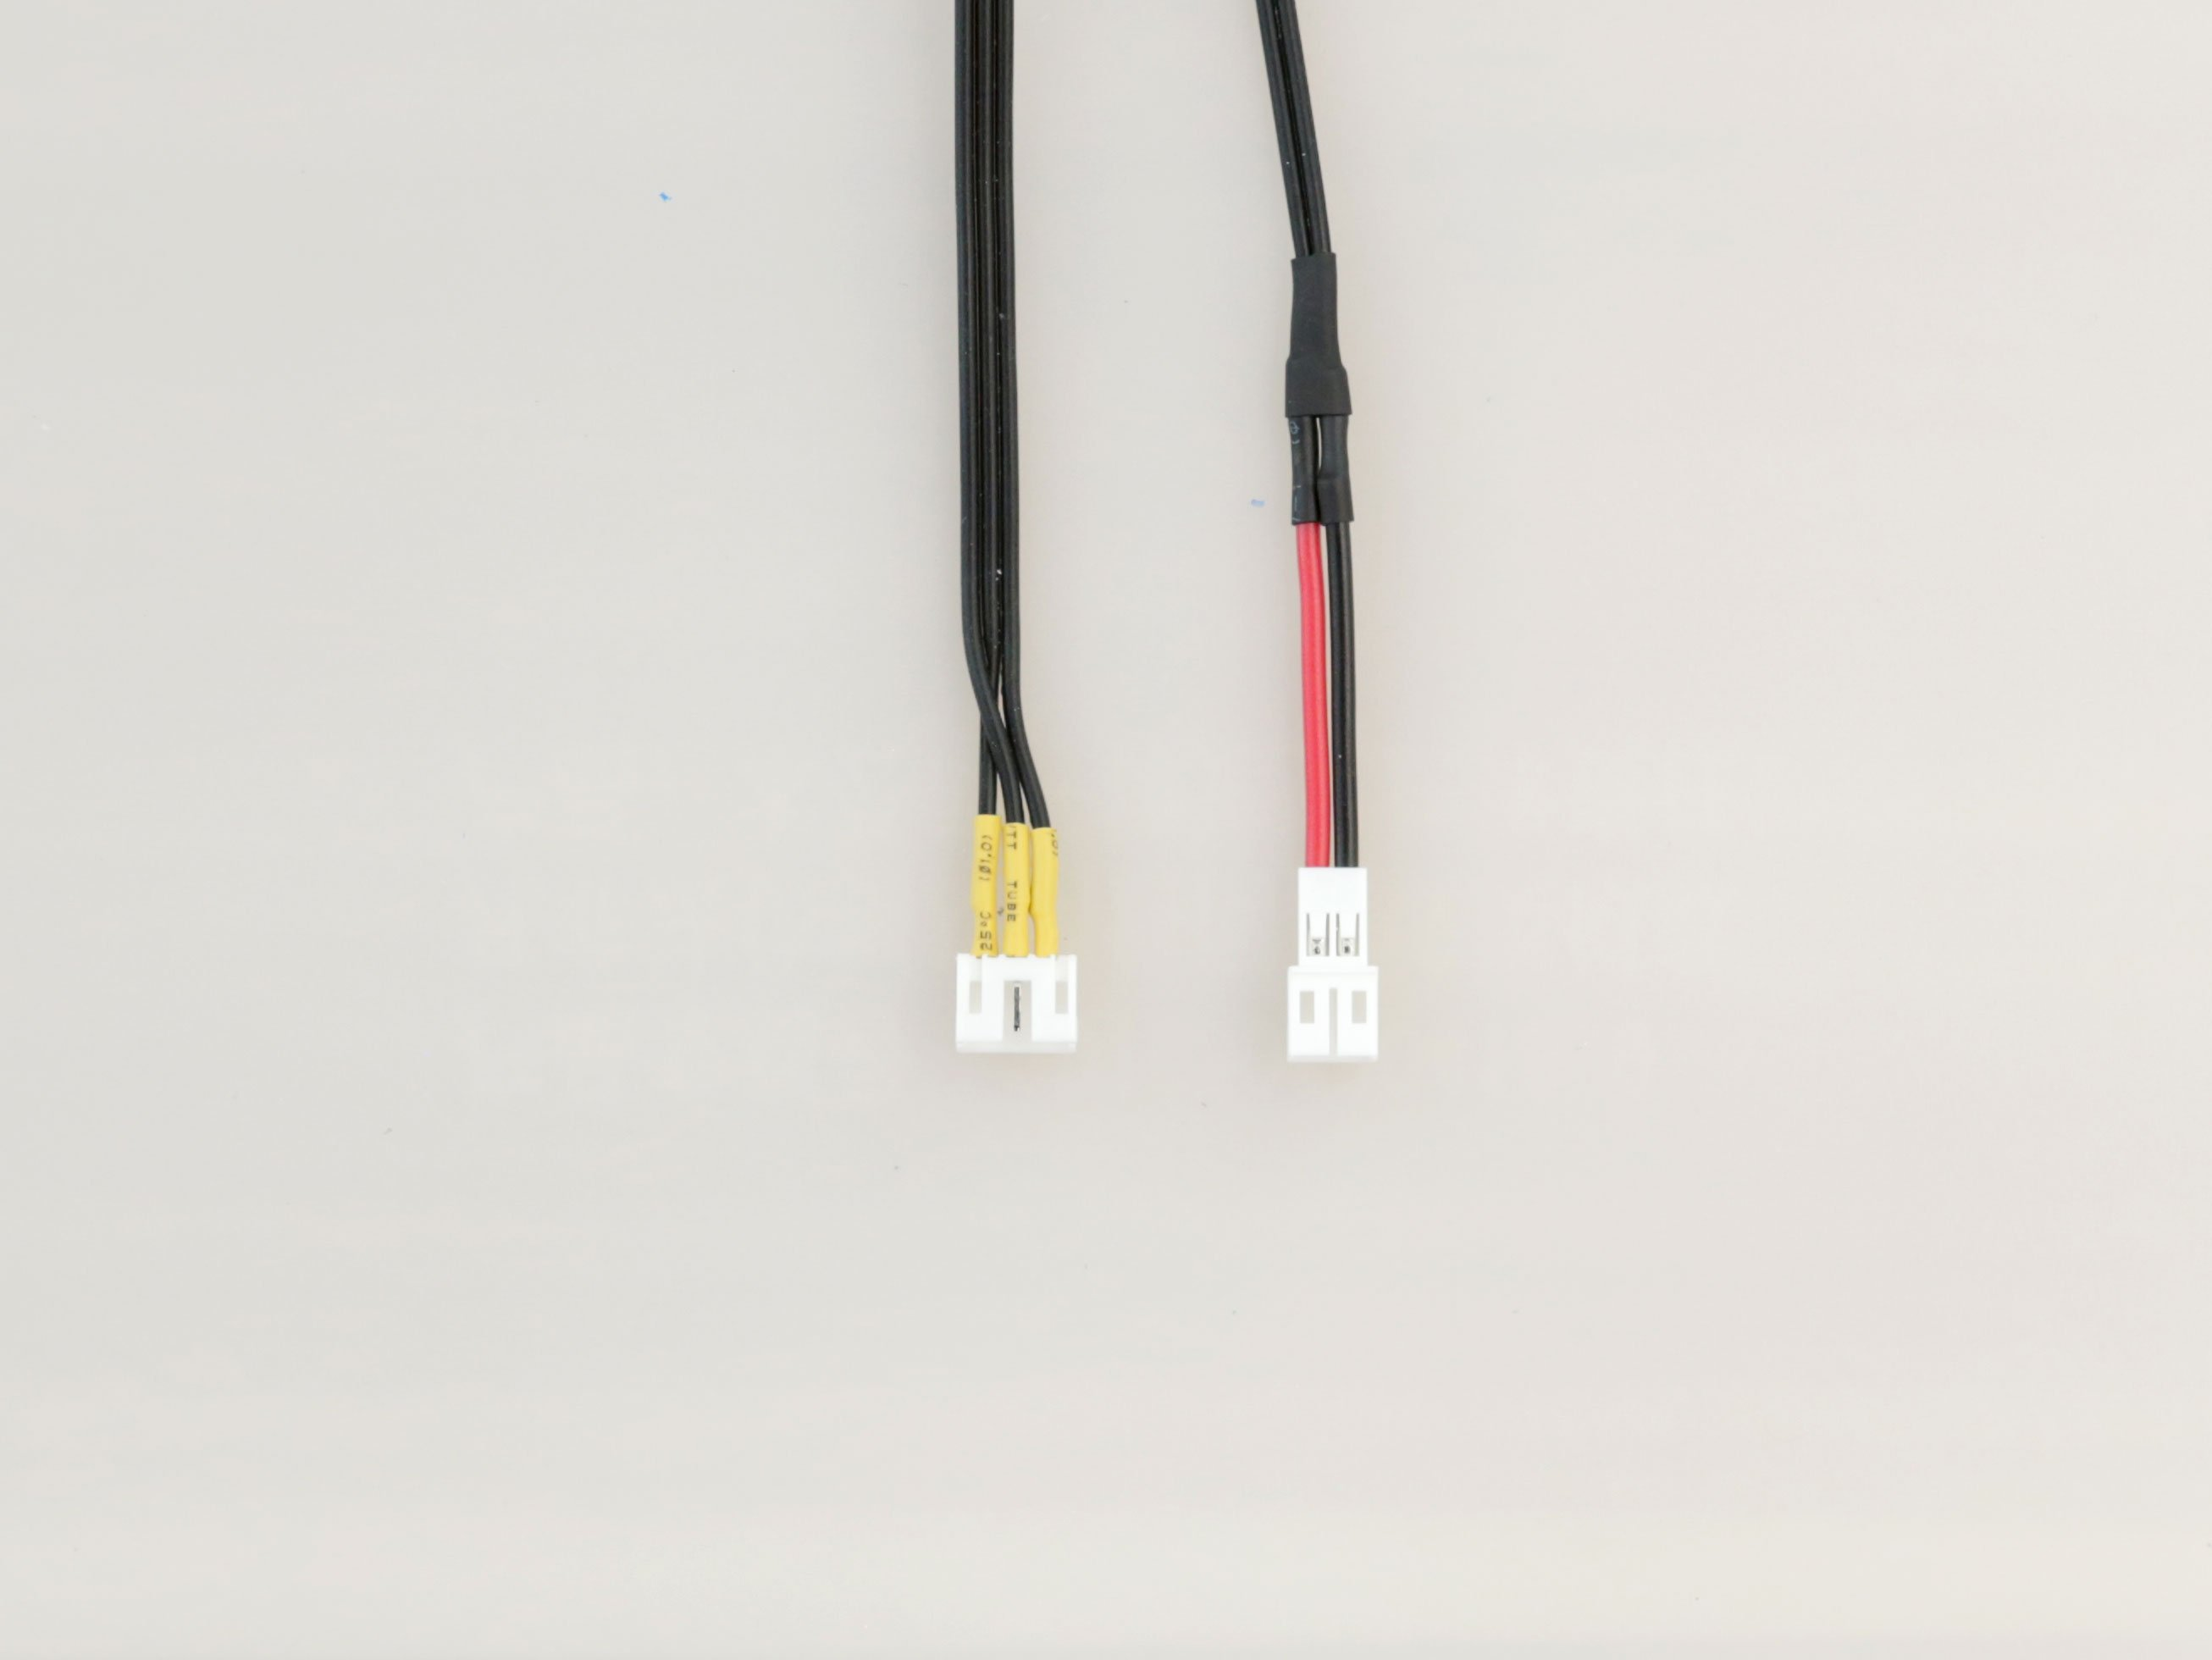 3d_printing_pot-switch-jst-cables.jpg